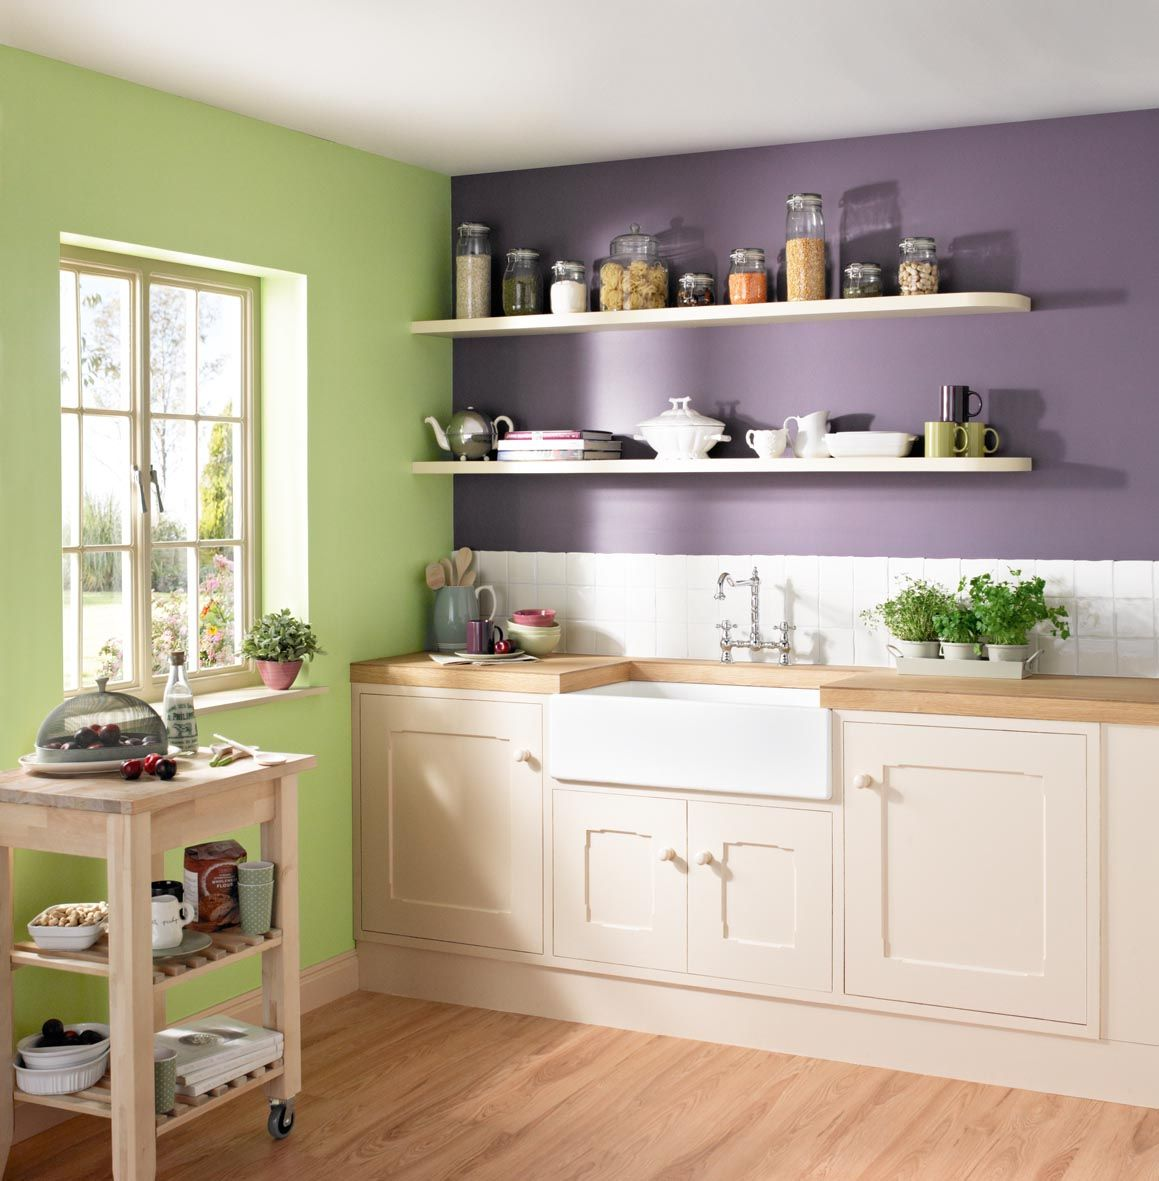 Grey Kitchen Units What Colour Walls: Crown Kitchen & Bathroom Paint In Olive Press (green) And